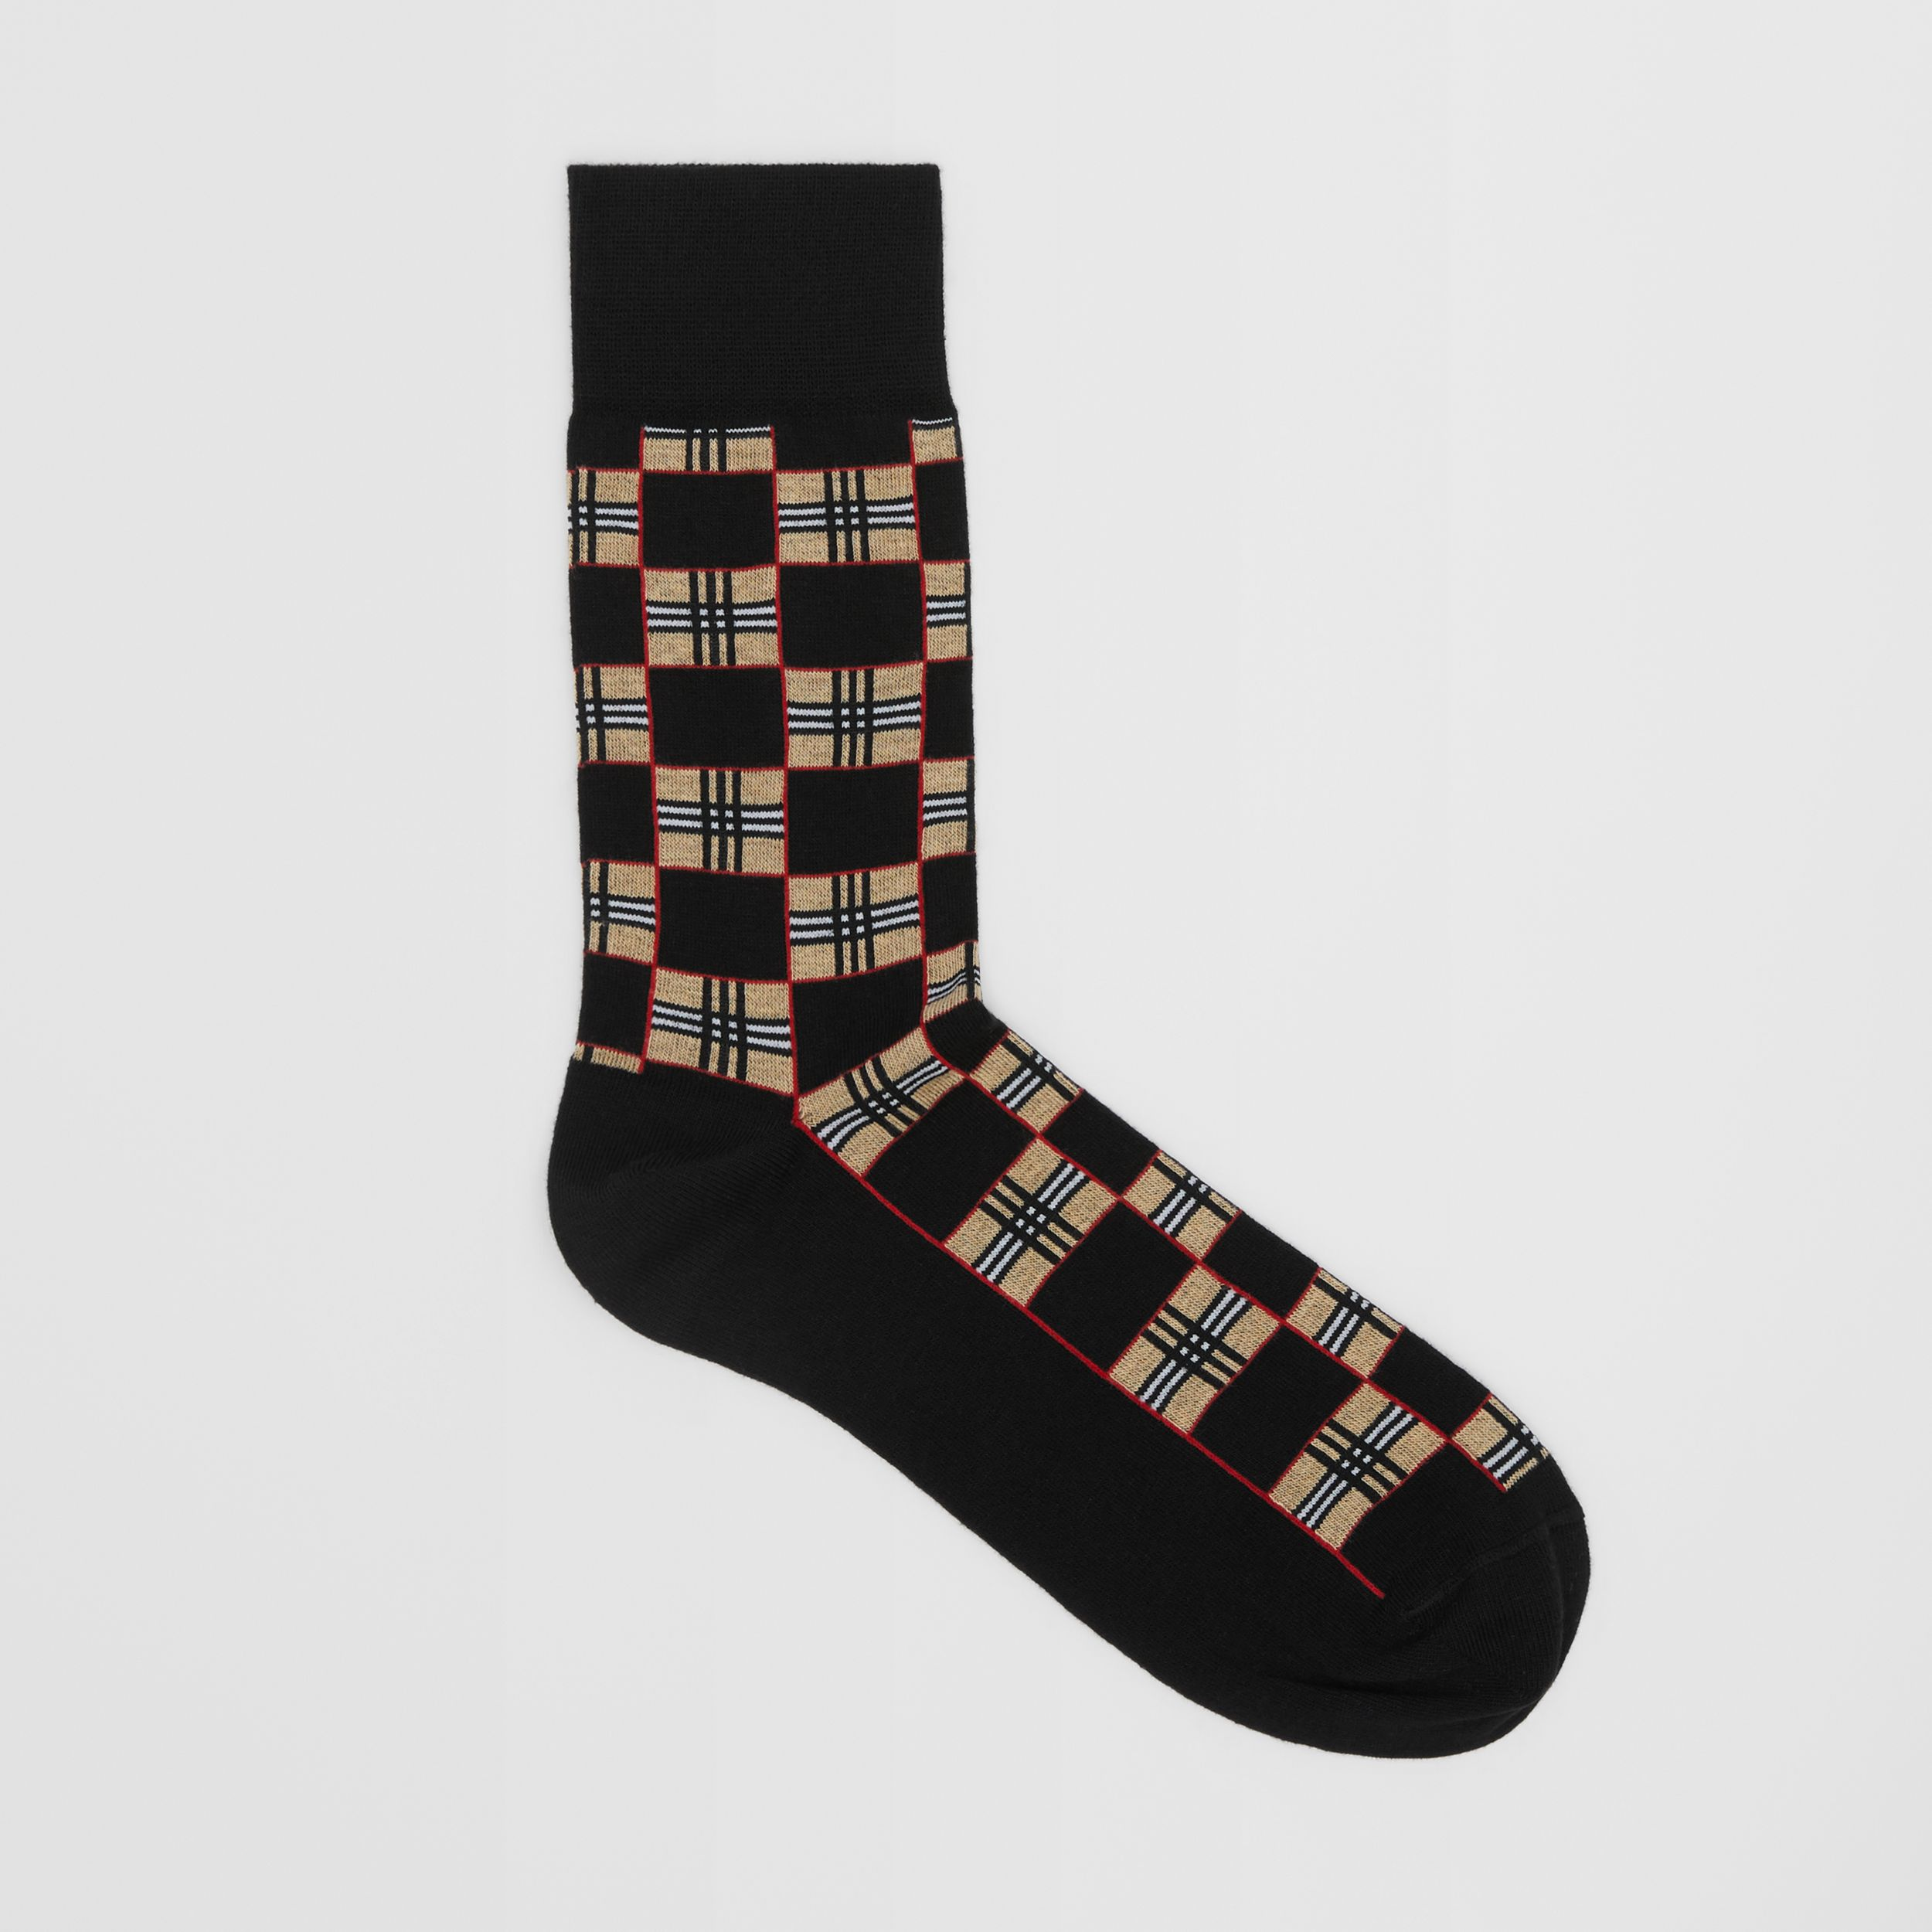 Chequer Cotton Blend Socks in Black | Burberry - 1